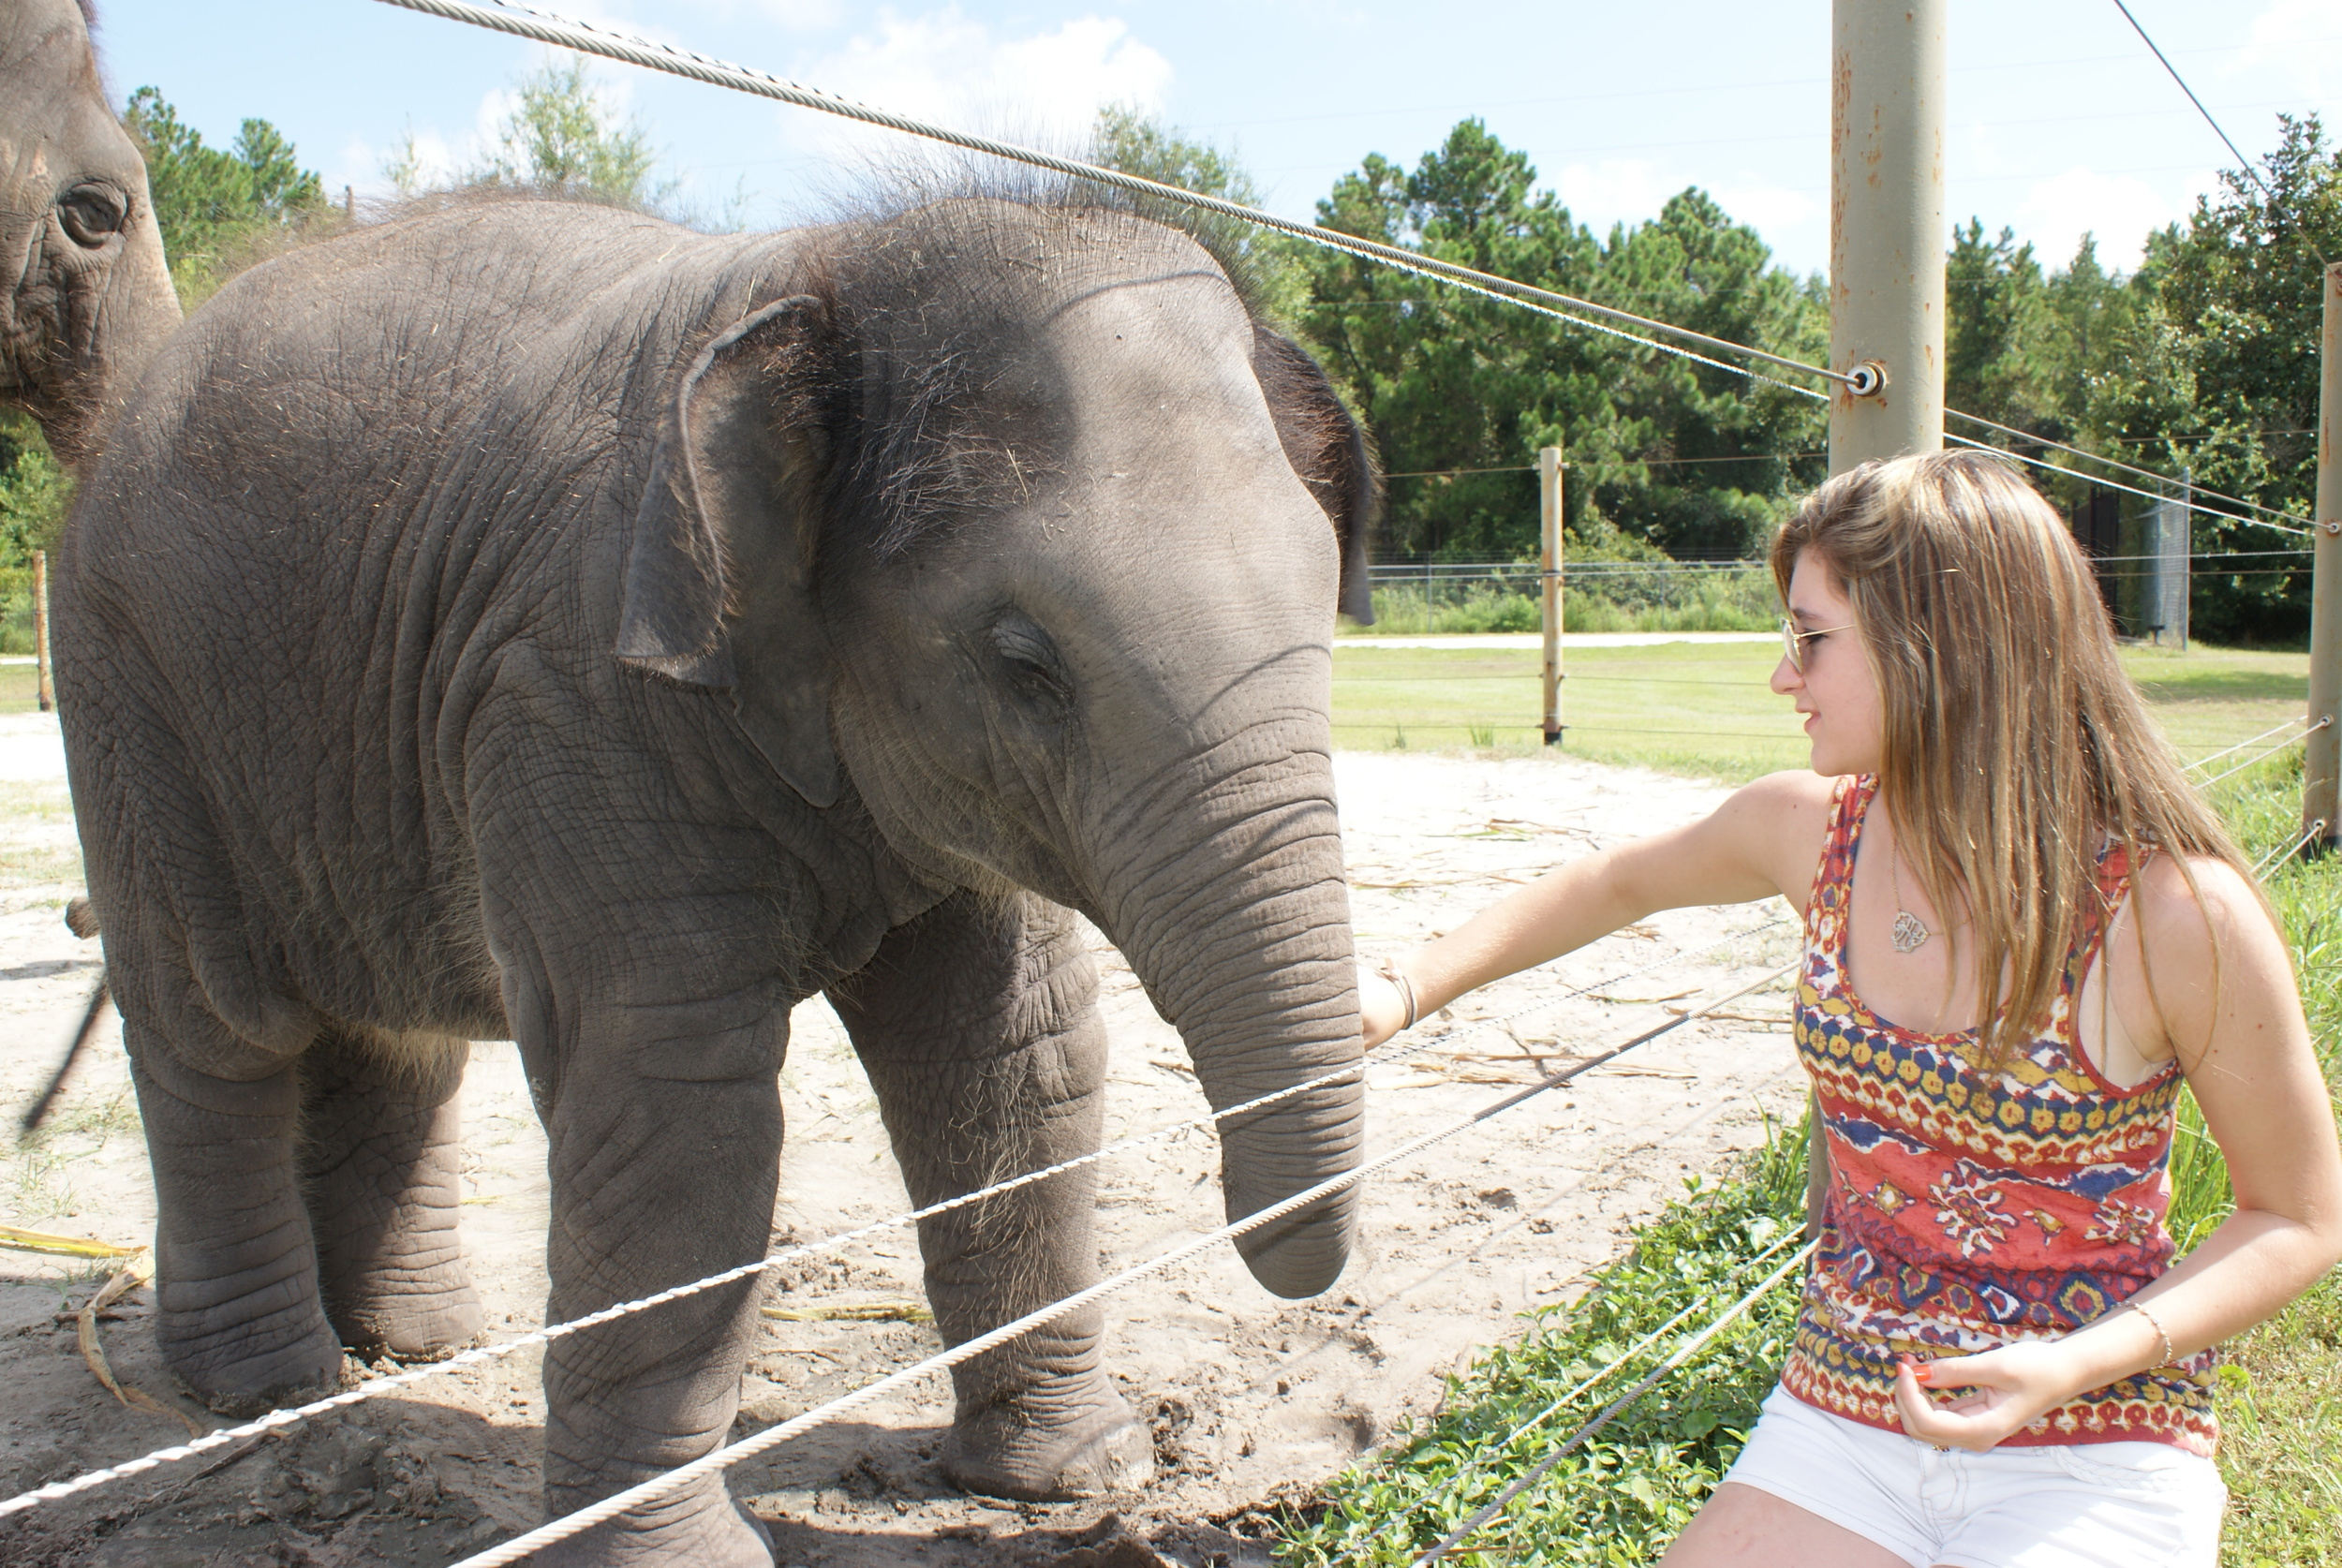 Elephant Conservation Ctr Aug 2014 154.JPG